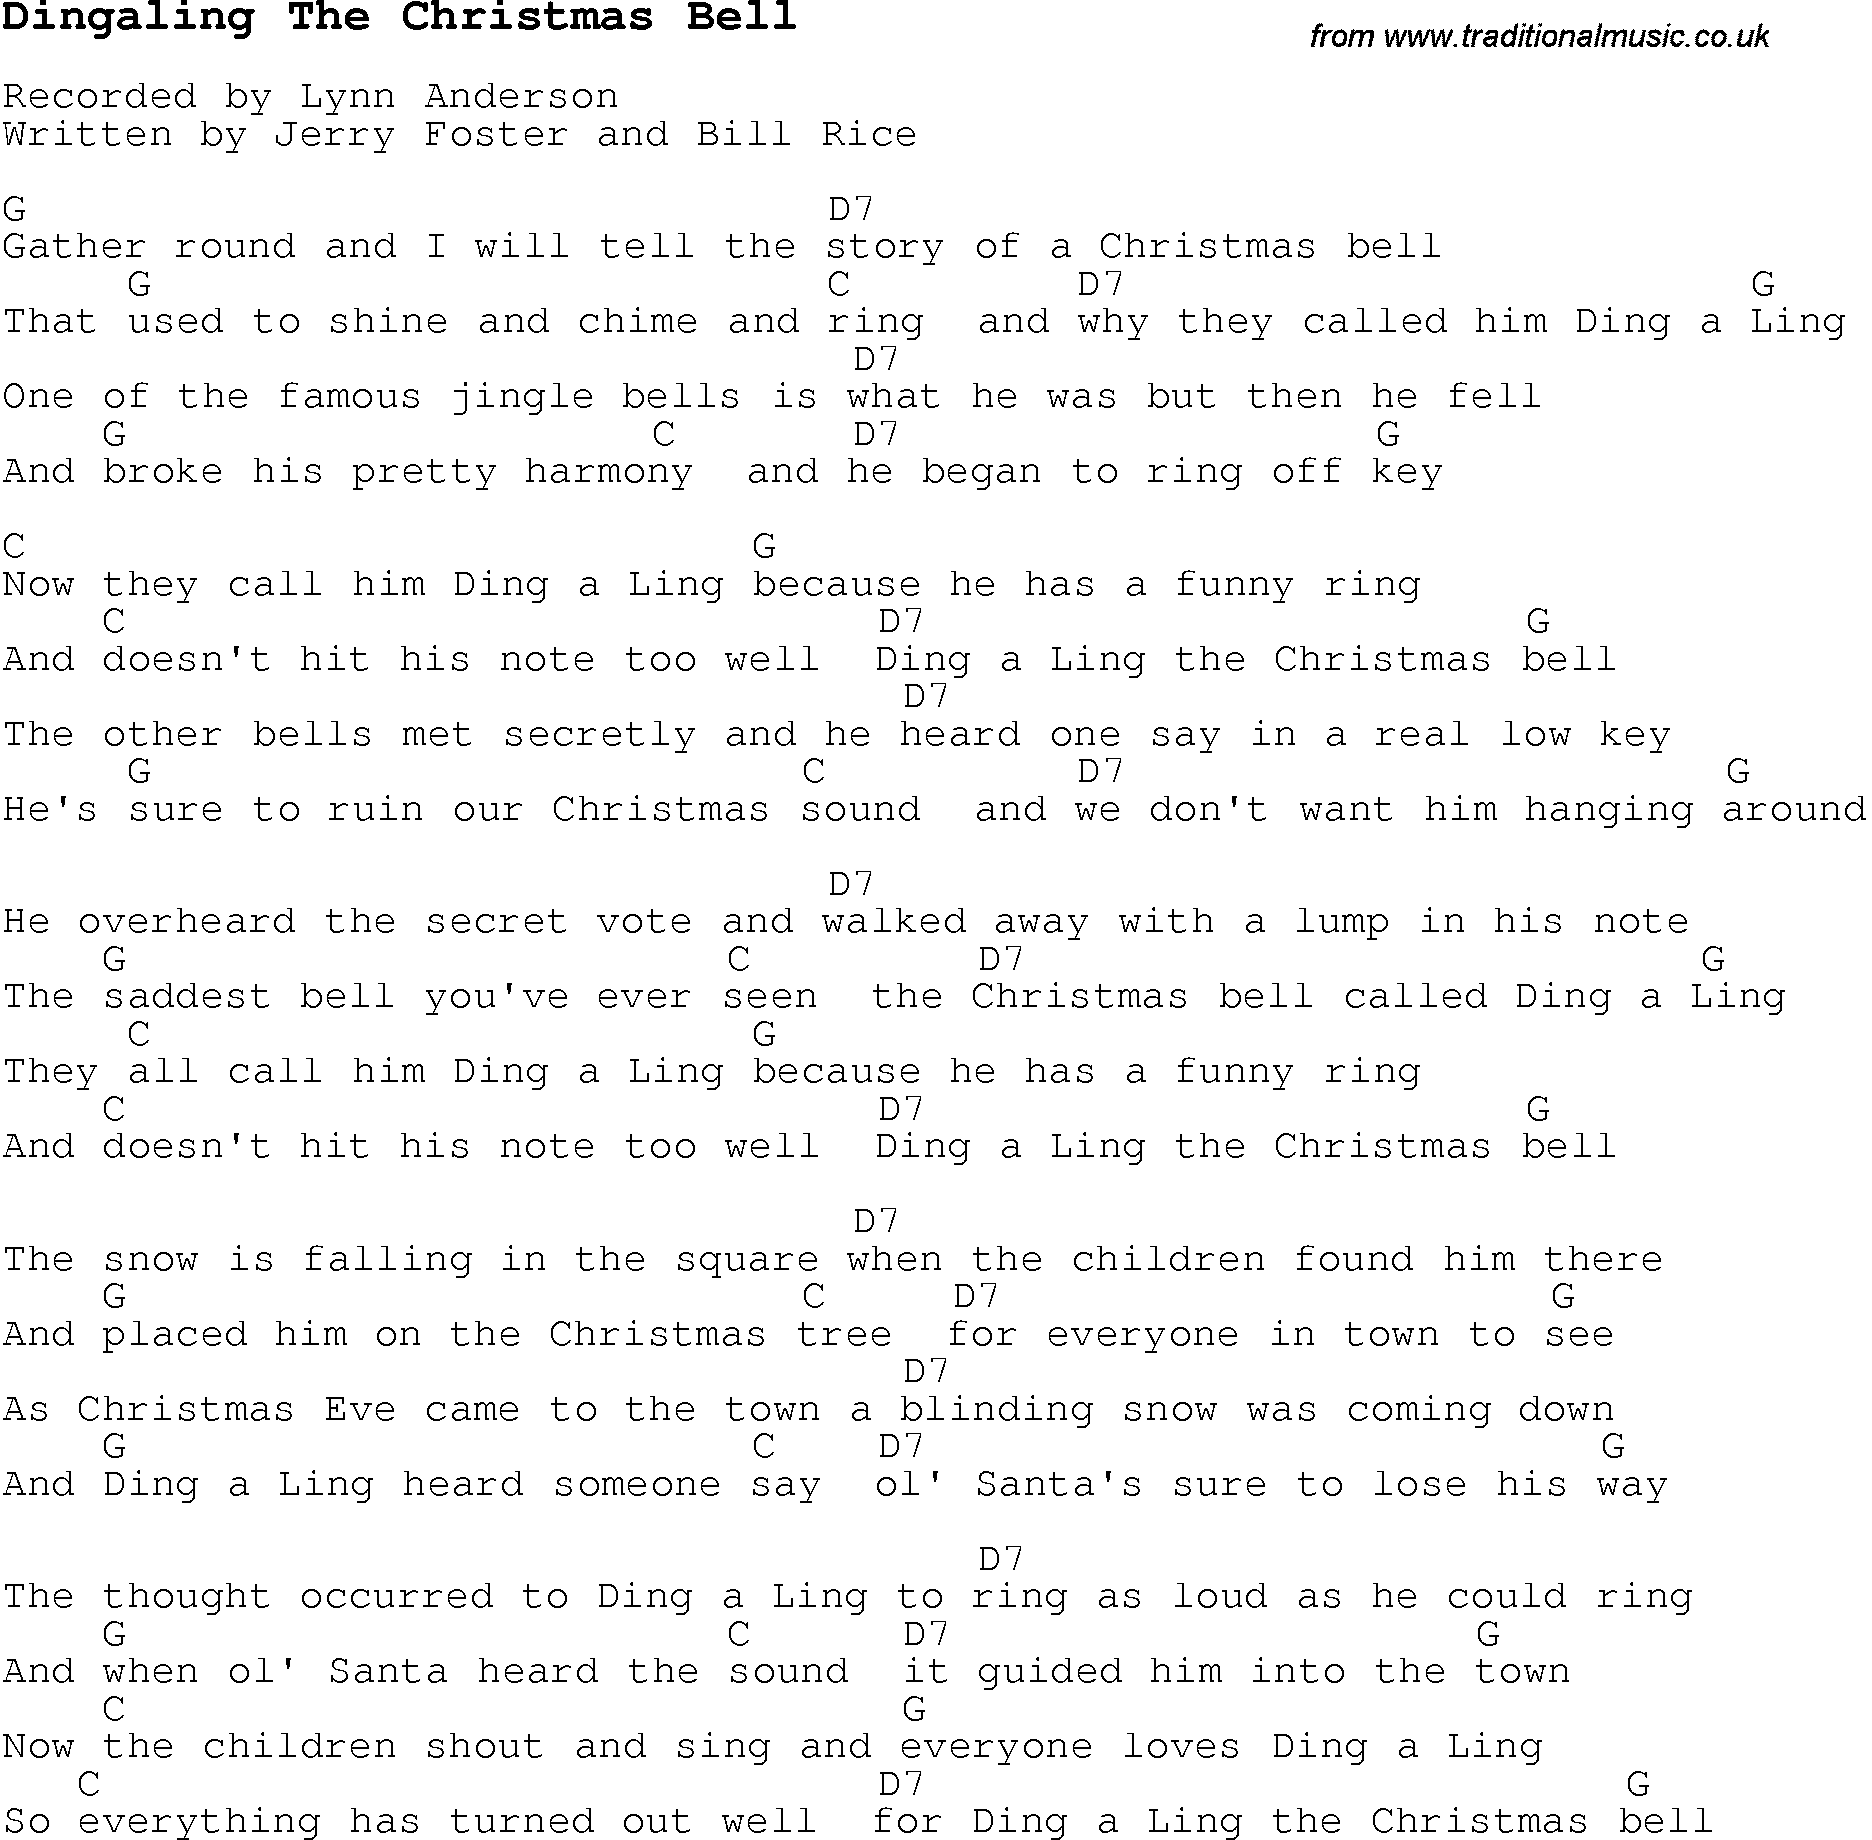 Christmas Carol/Song lyrics with chords for Dingaling The Christmas Bell